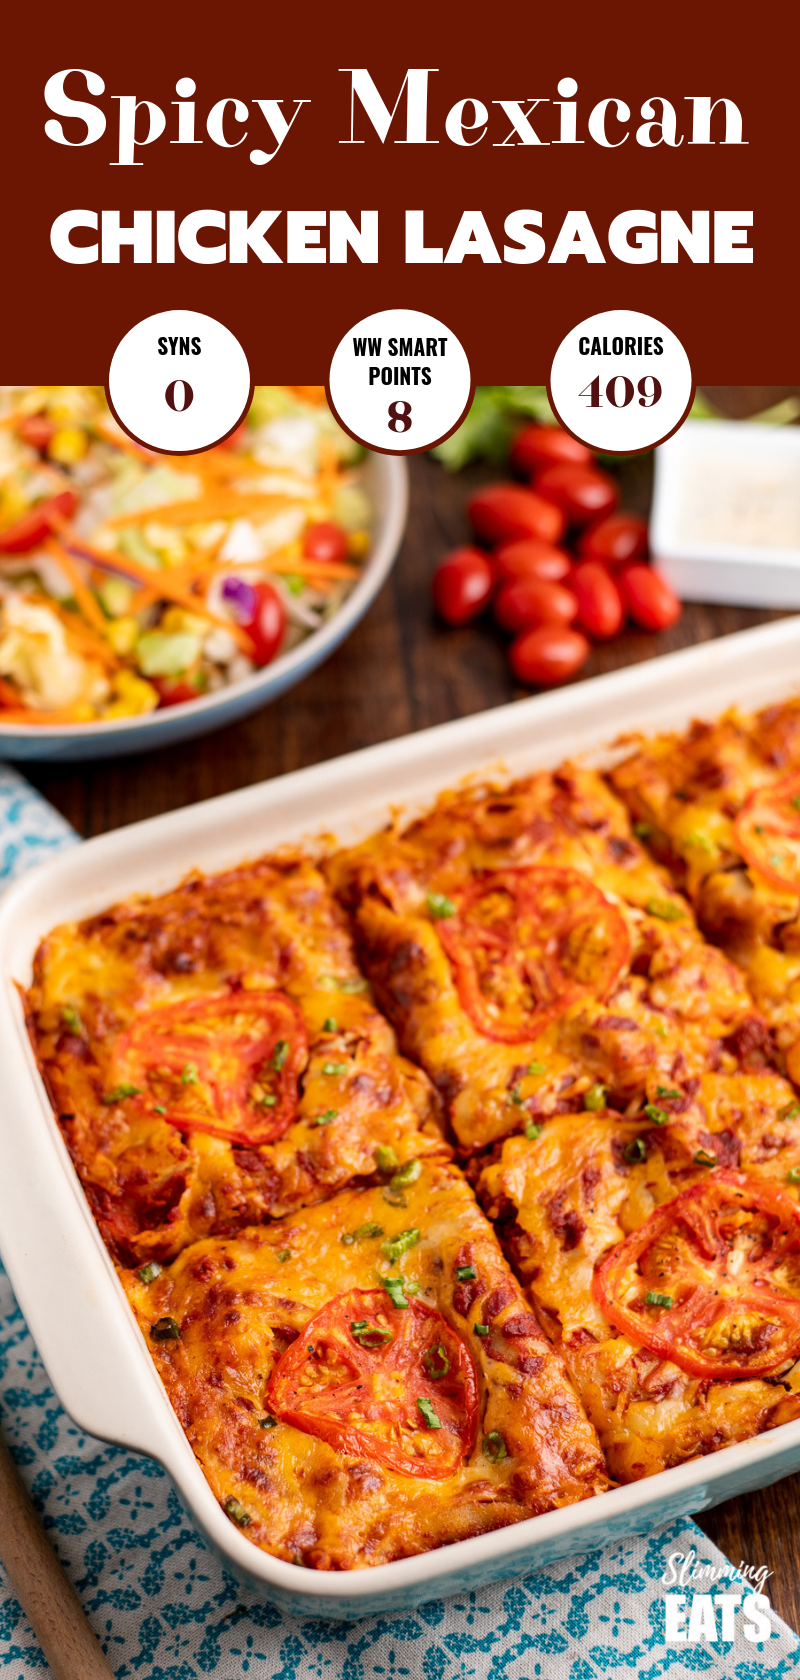 Photo of Syn Free Spicy Mexican Chicken Lasagne | Abnehmen isst